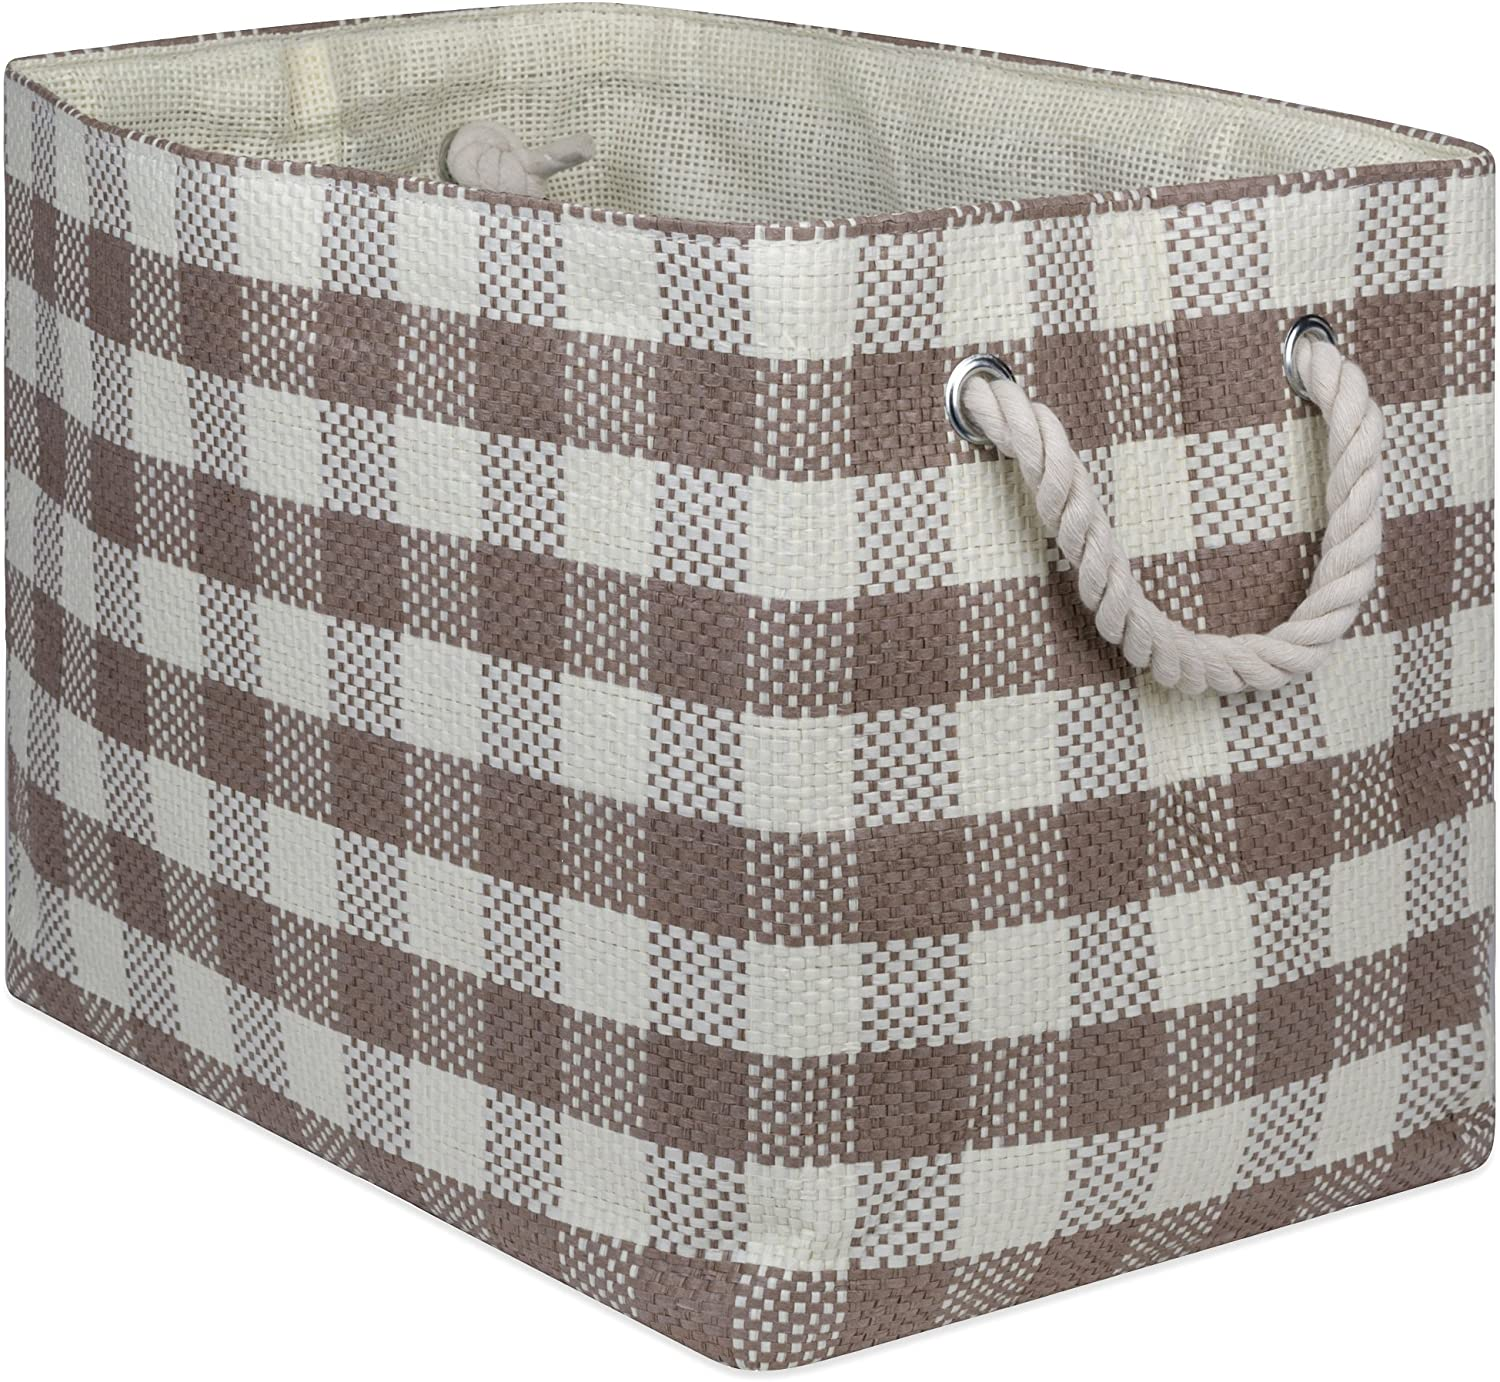 """DII Oversize Woven Paper Storage Basket or Bin, Collapsible & Convenient Home Organization Solution for Office, Bedroom, Closet, Toys, & Laundry(Medium - 15x10x12""""), Stone Checkered"""